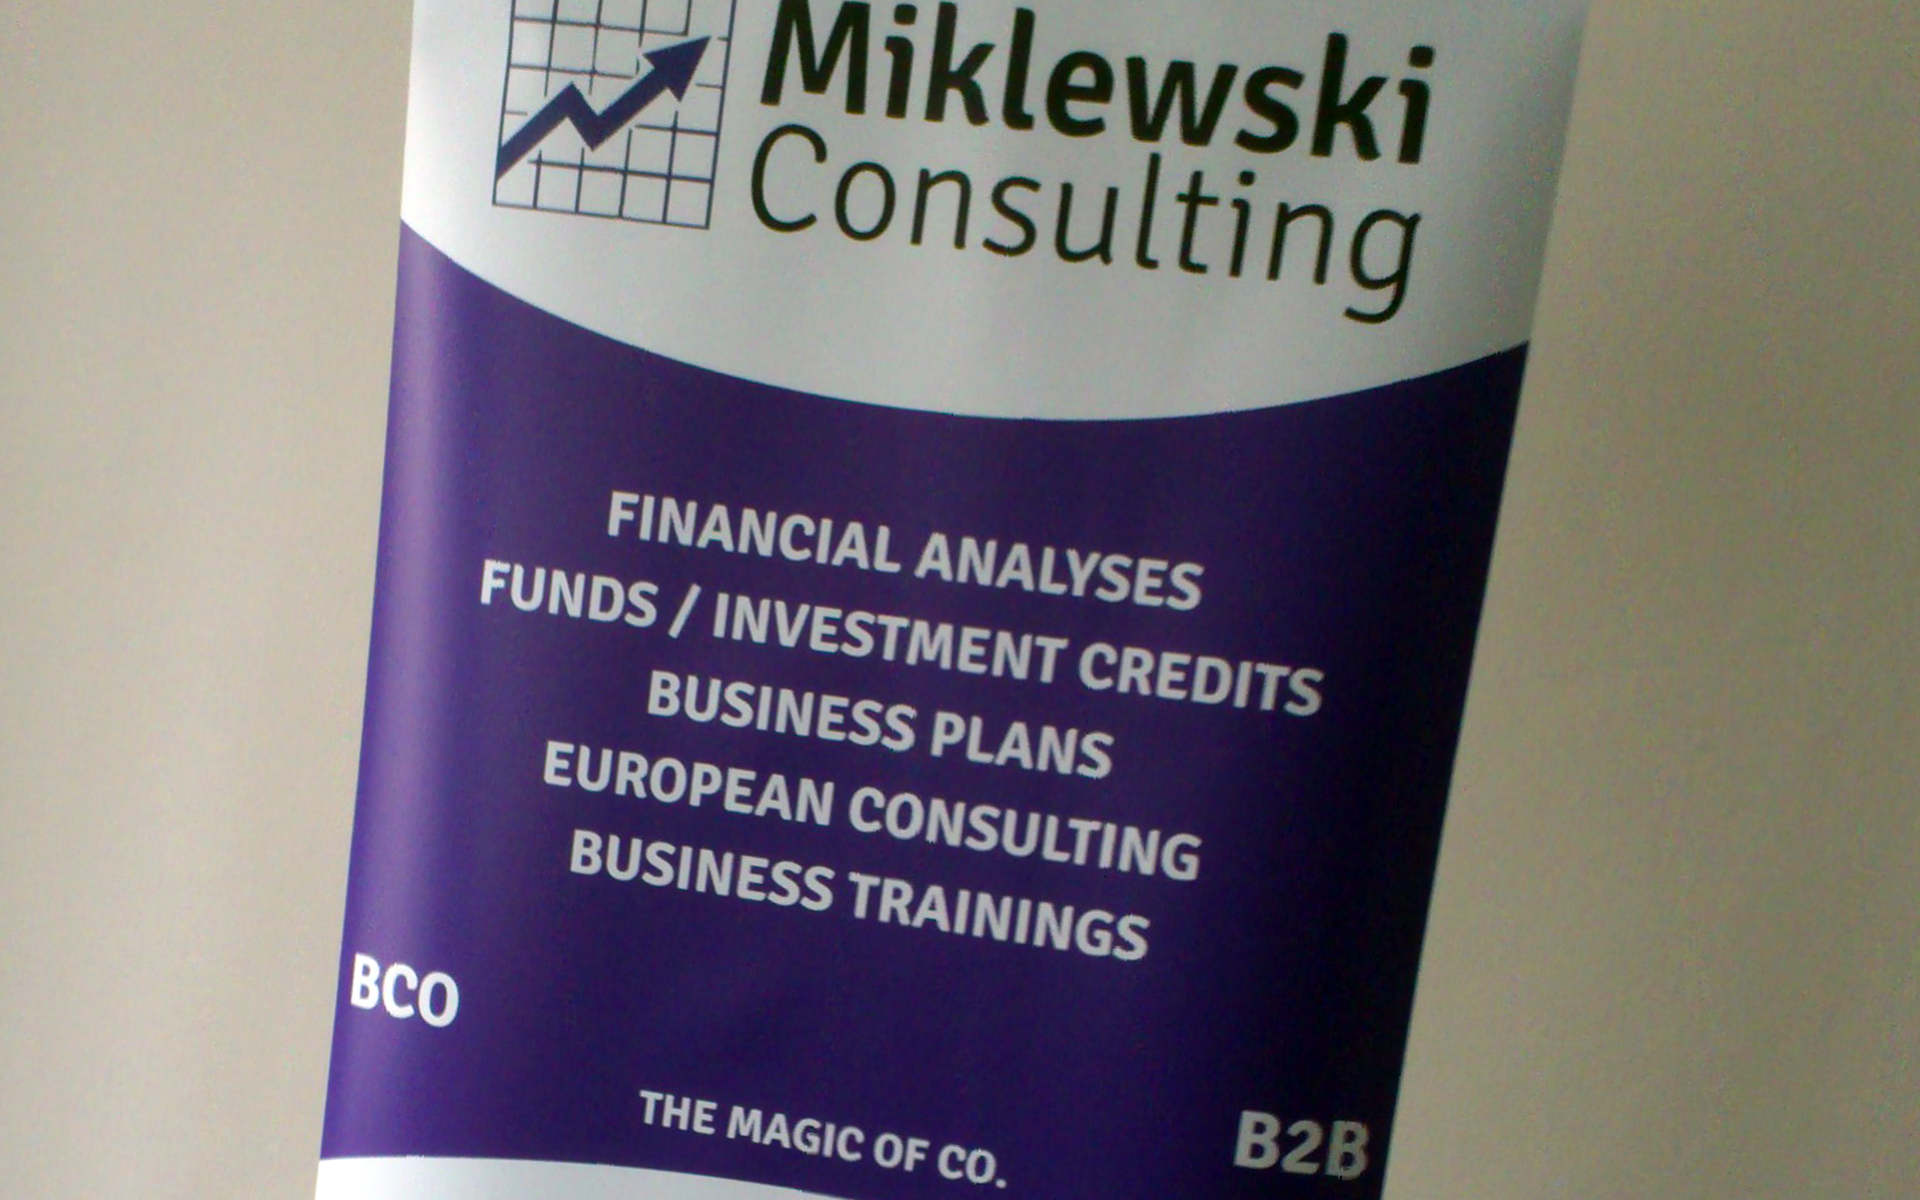 Rollup Miklewski Consulting